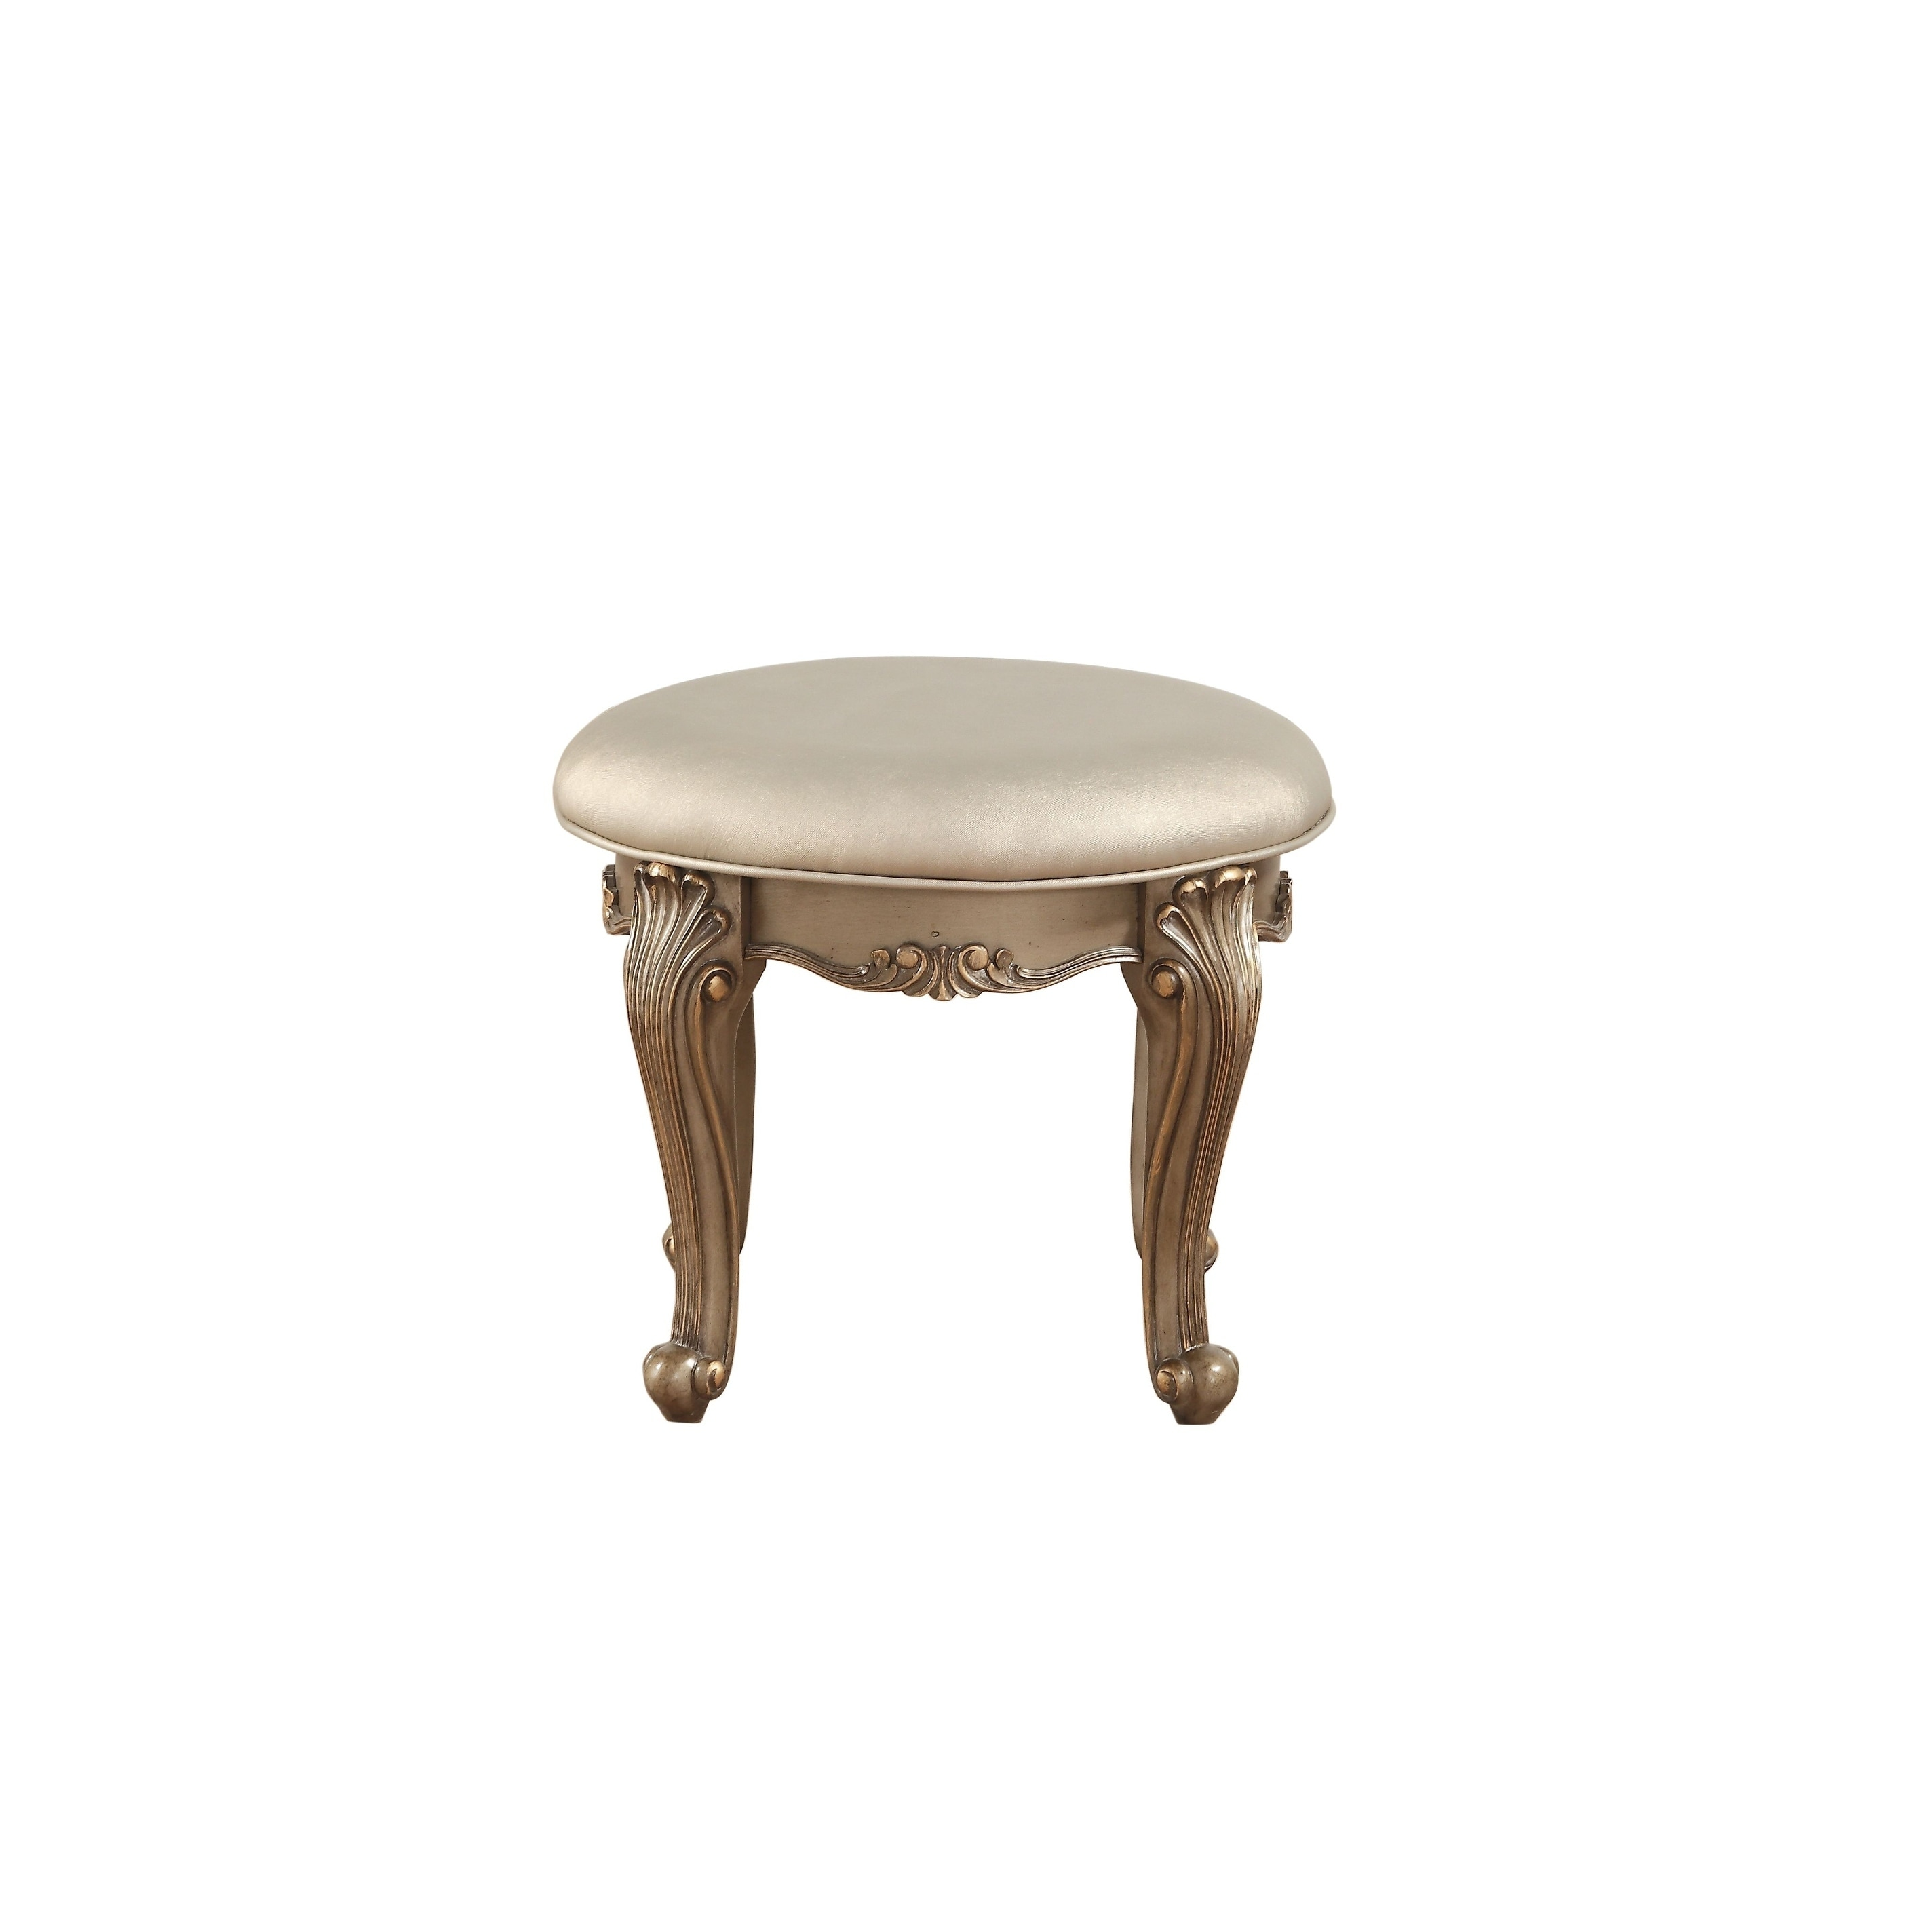 Wondrous Acme Orianne Antique Gold Wood Vanity Stool With Champagne Pu Upholstery Unemploymentrelief Wooden Chair Designs For Living Room Unemploymentrelieforg